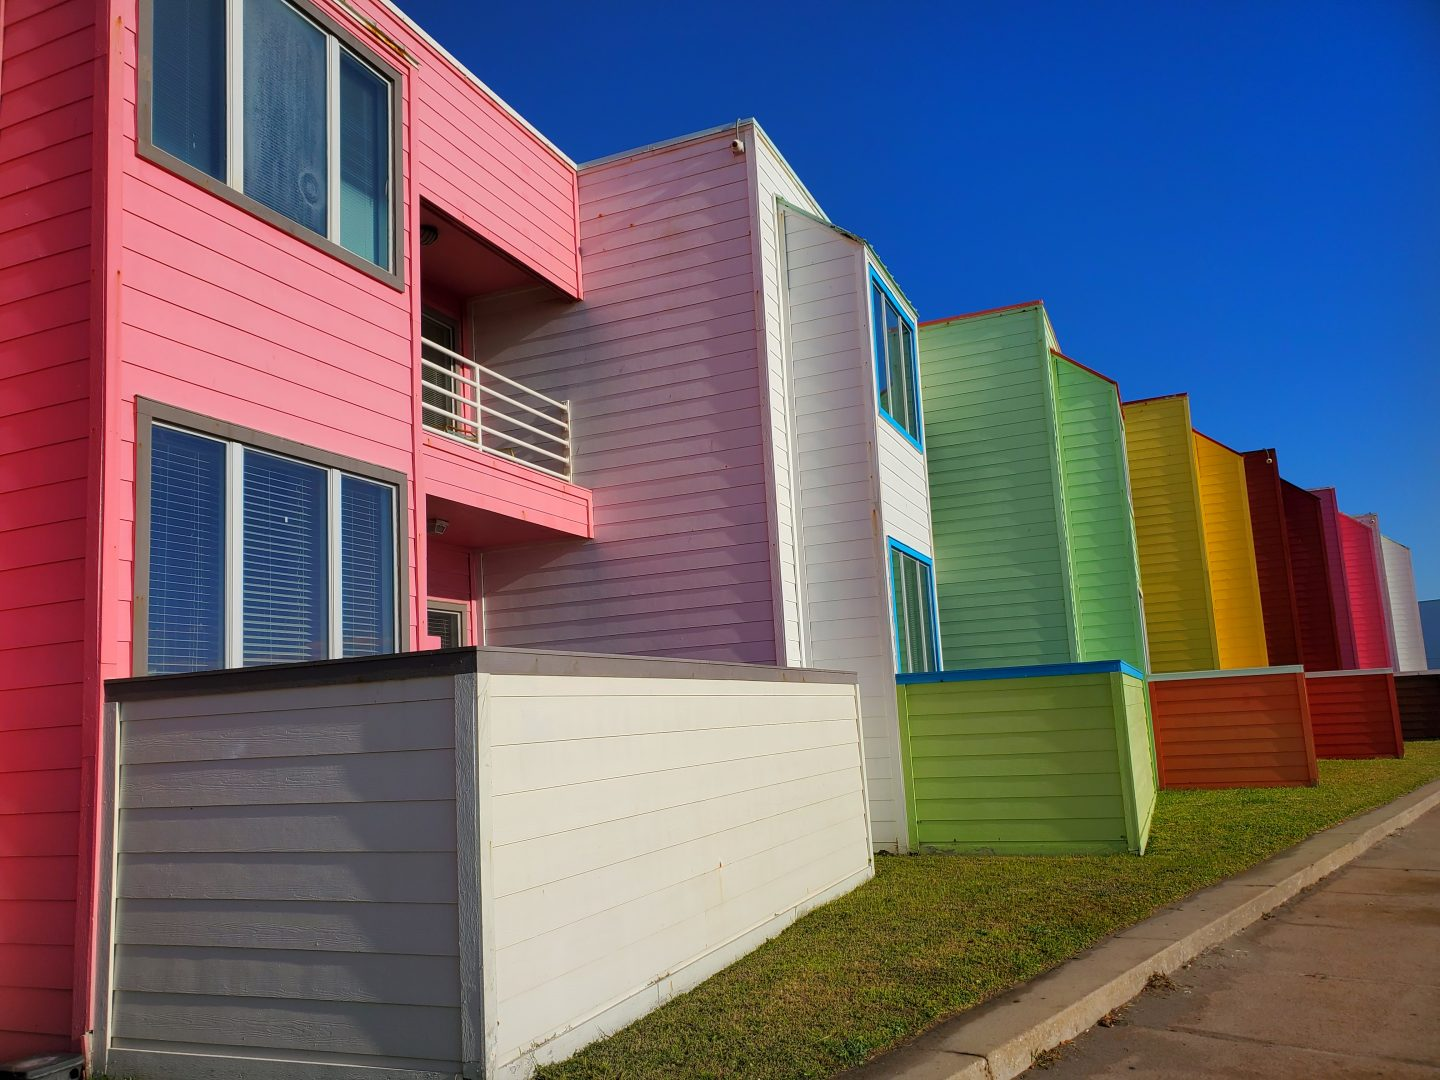 Galveston Island Visit The Most Tropical Texas Vacation Spots